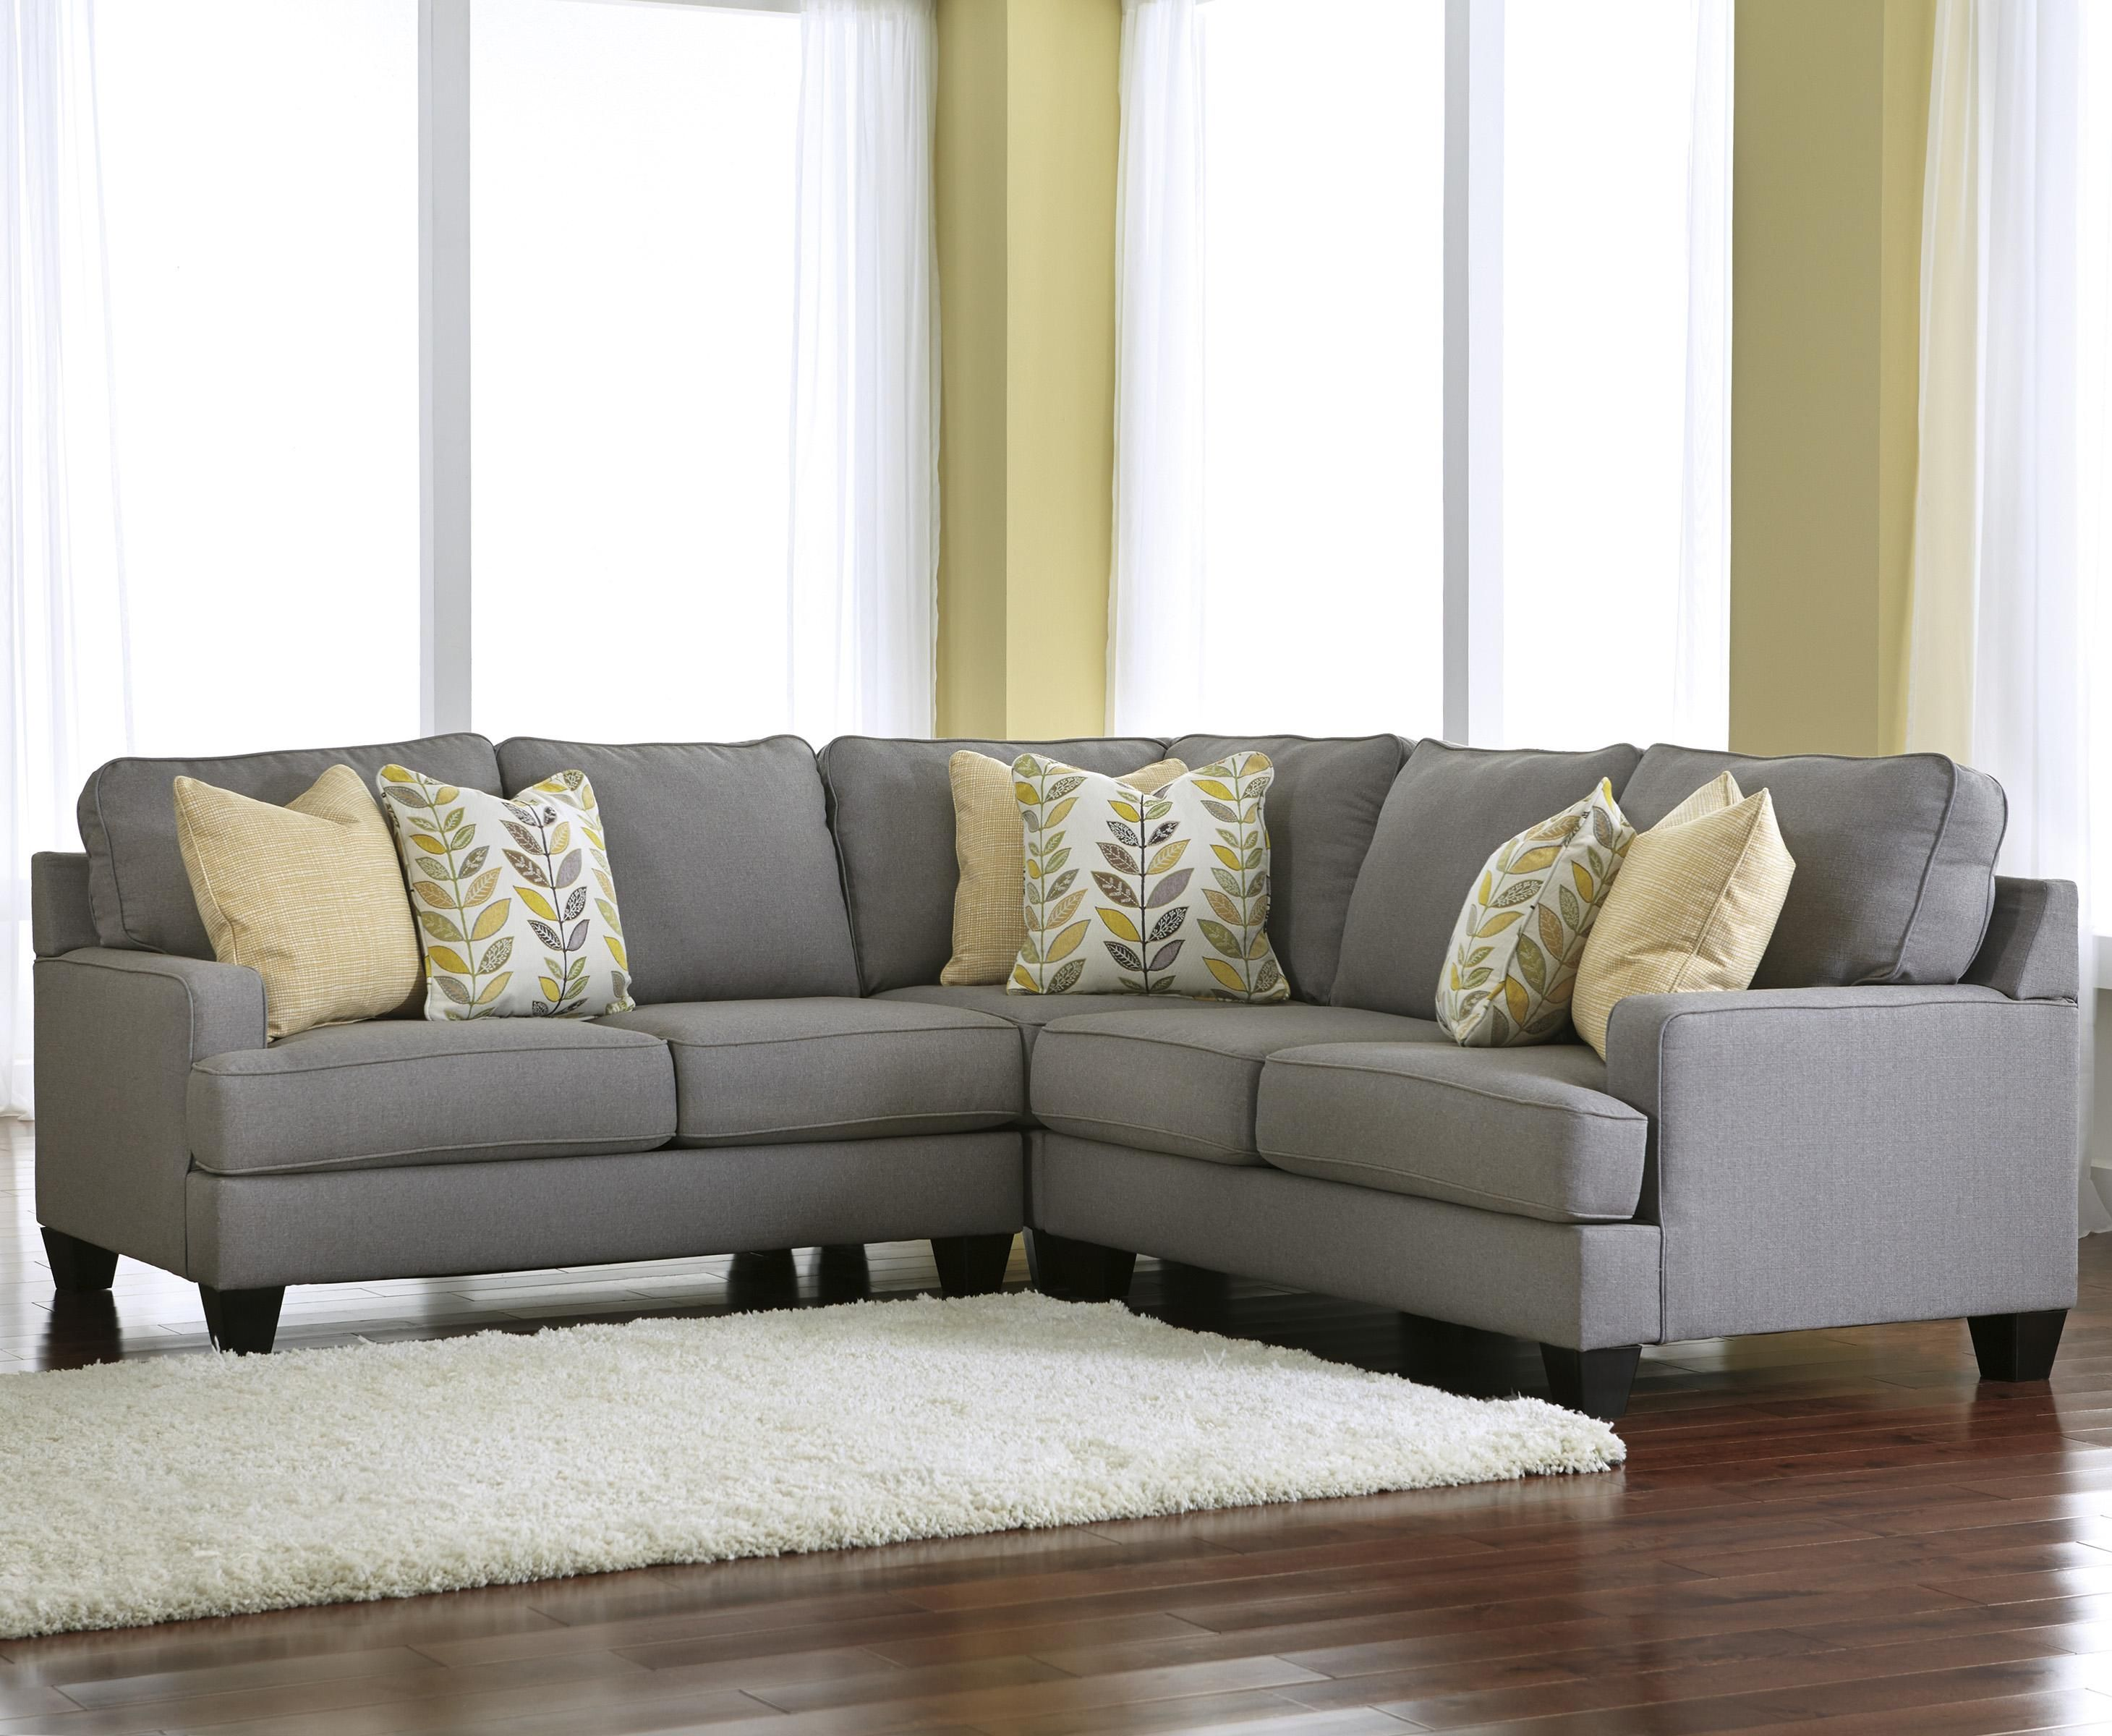 Chamberly Alloy Modern 3 Piece Corner Sectional Sofa with